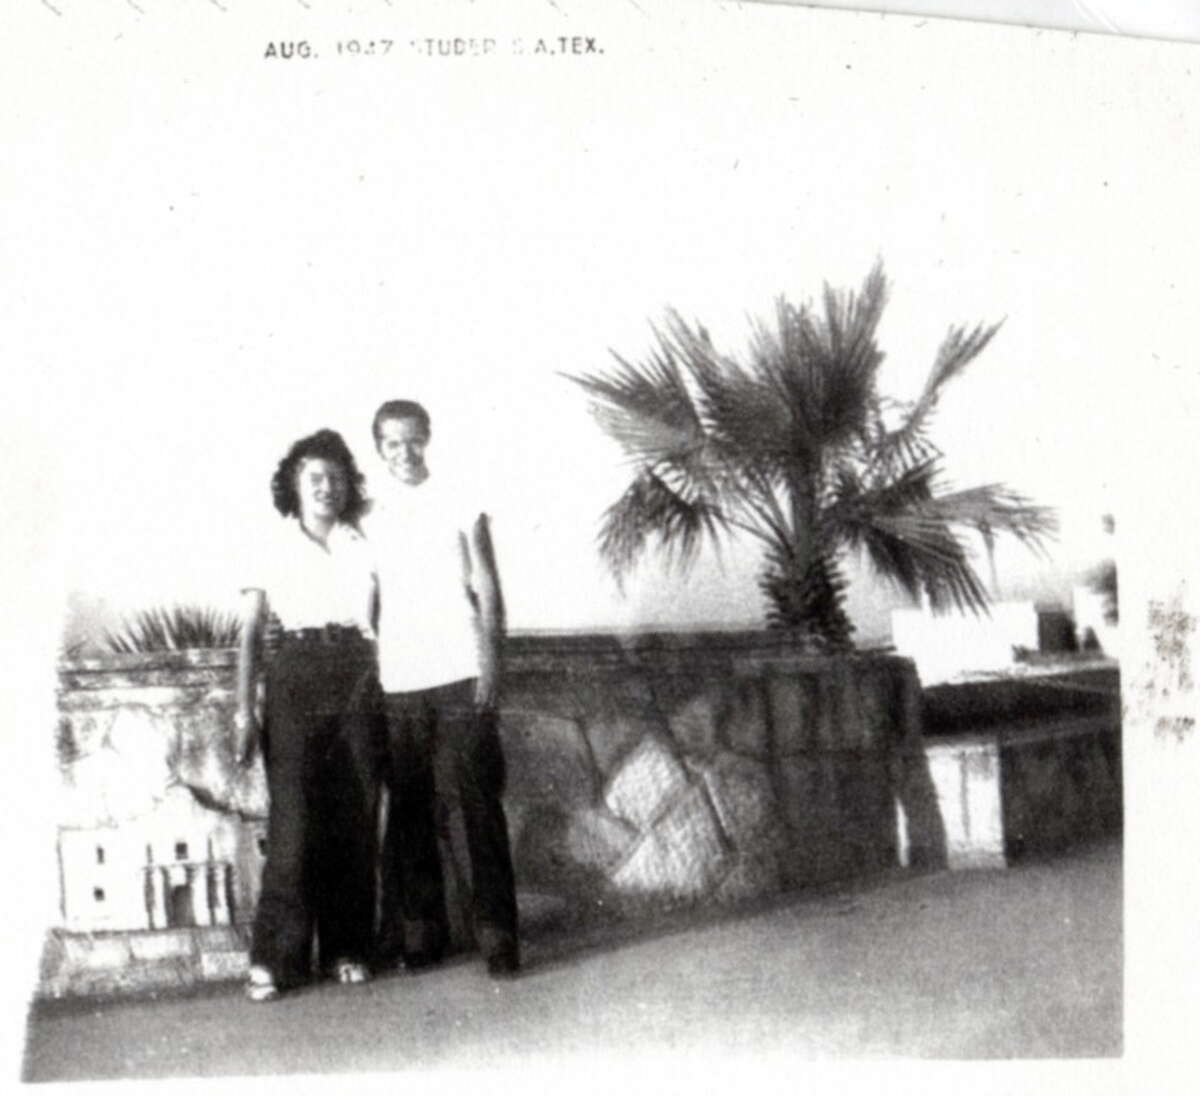 Then: Melvin E. Perez and Mary A. Perez in San Antonio in 1947.